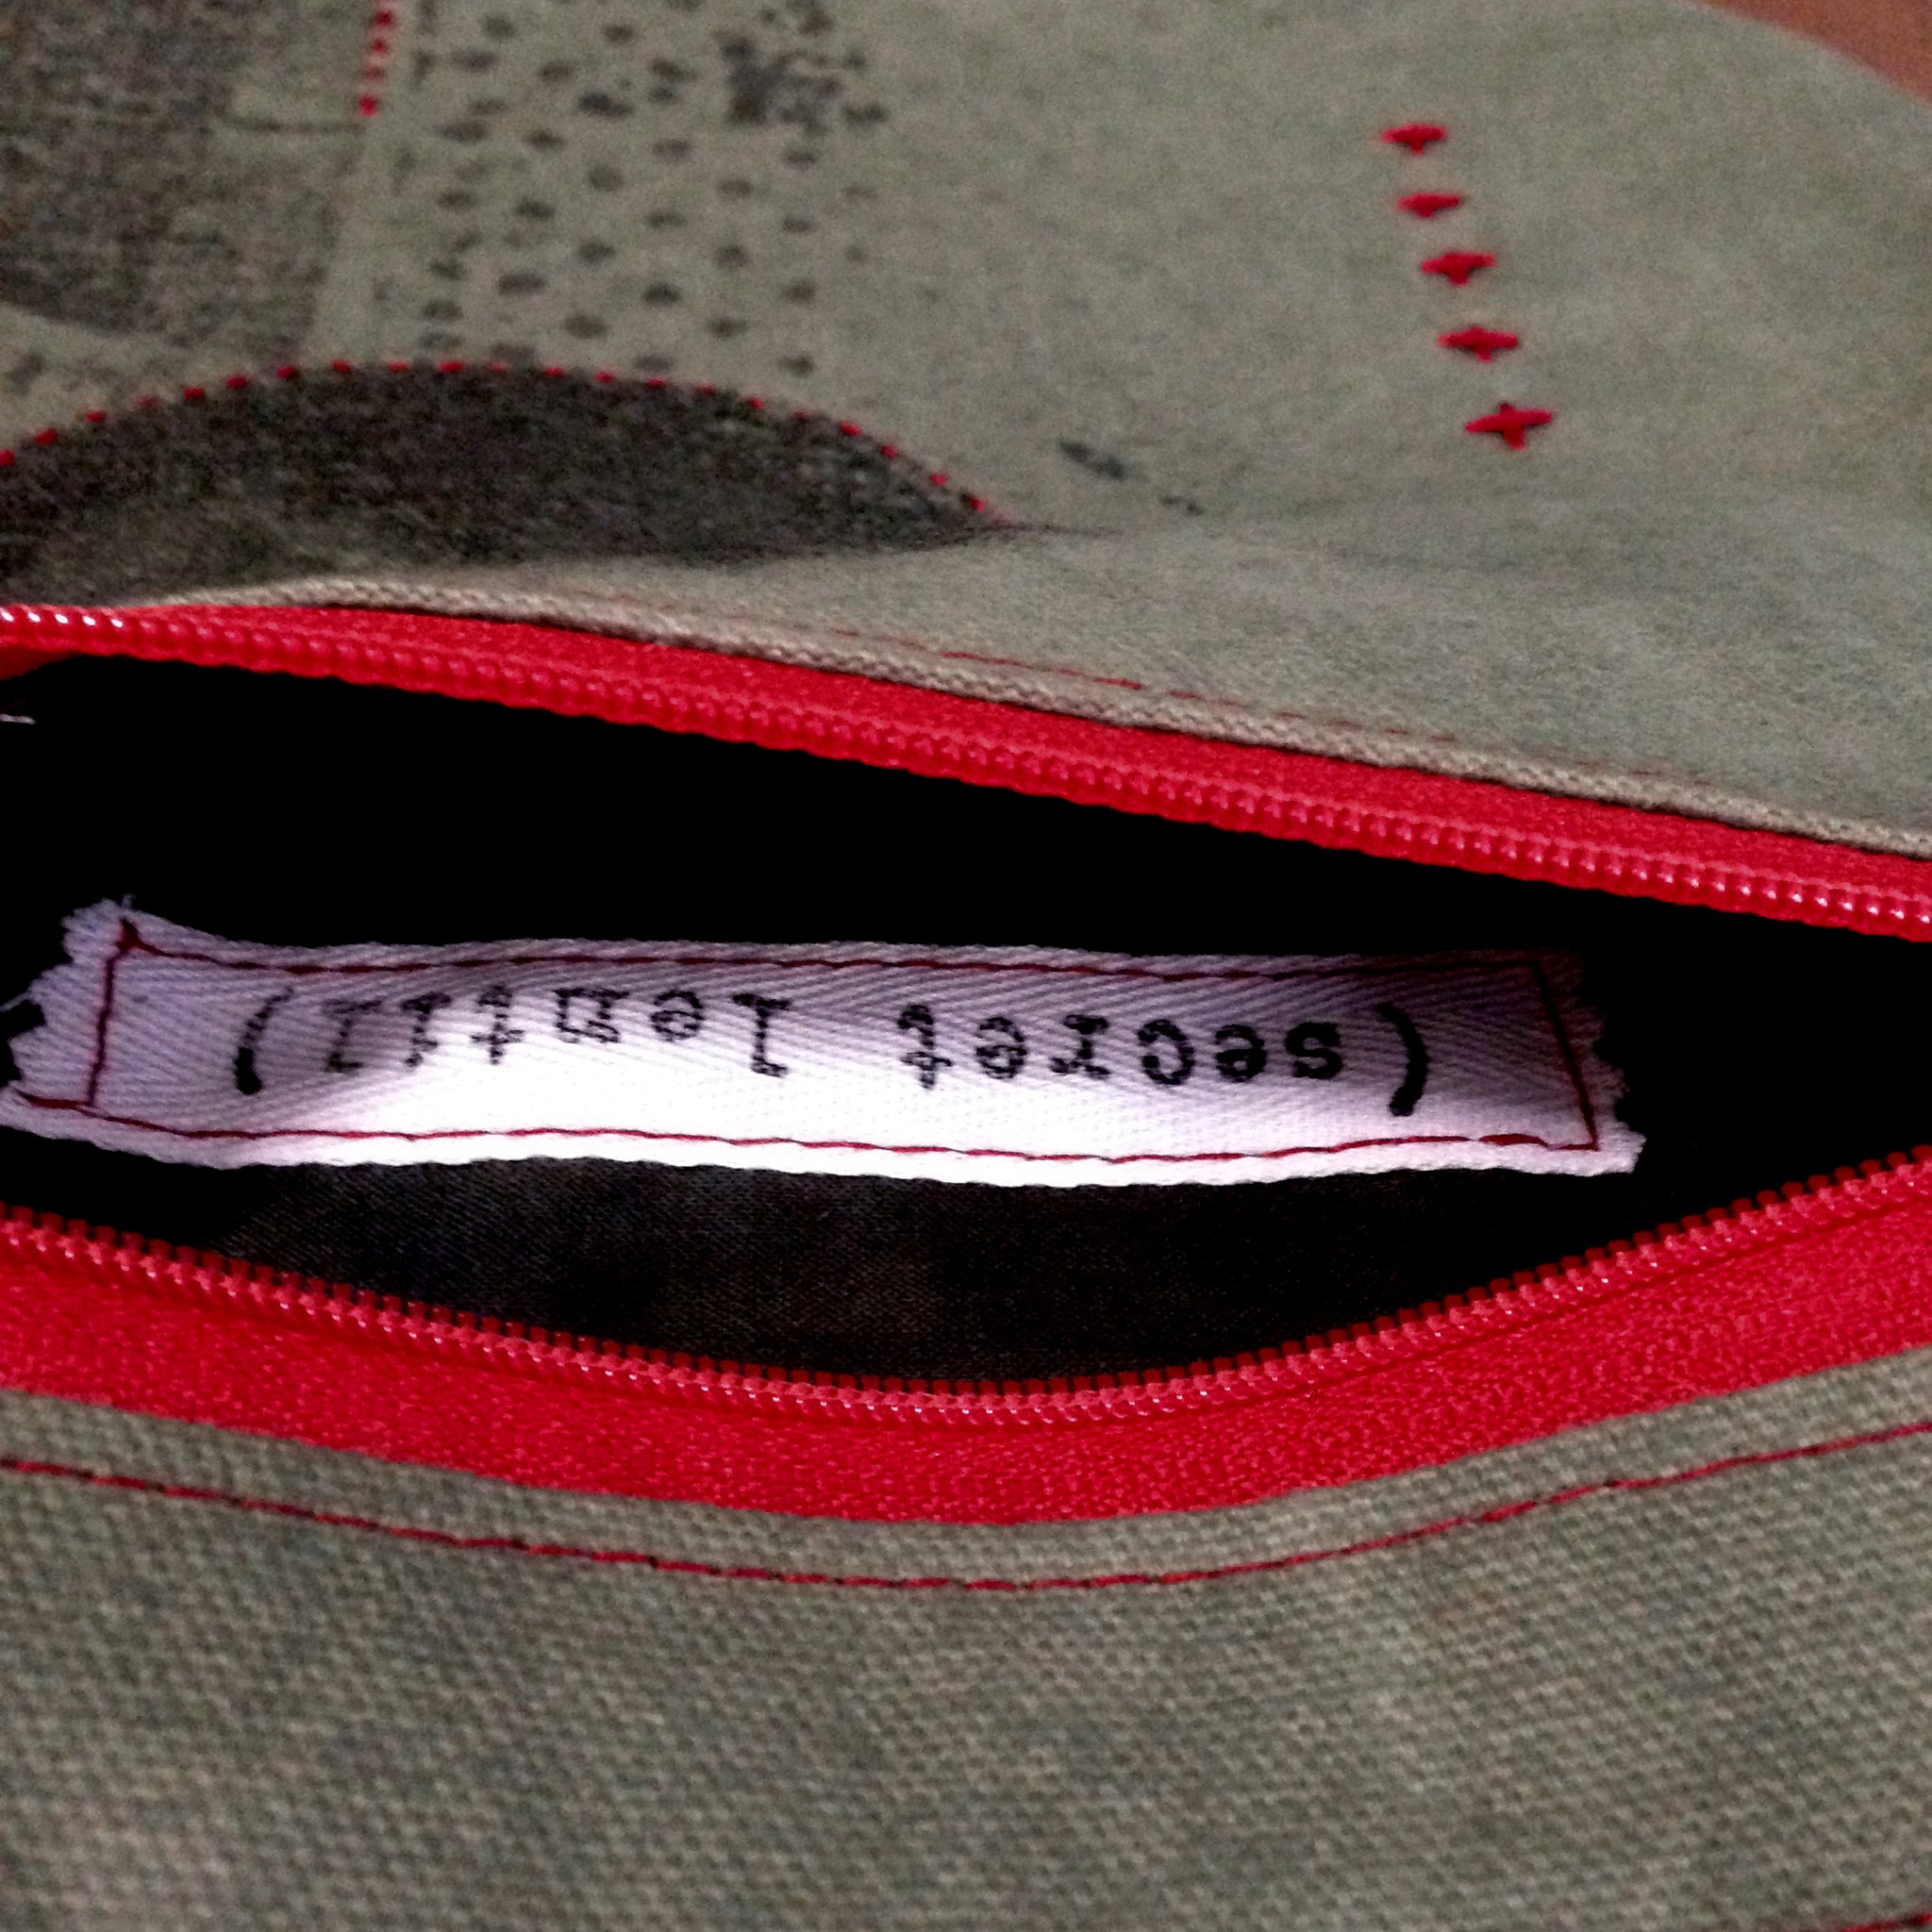 crammit pouch (khaki green, charcoal, black and red)